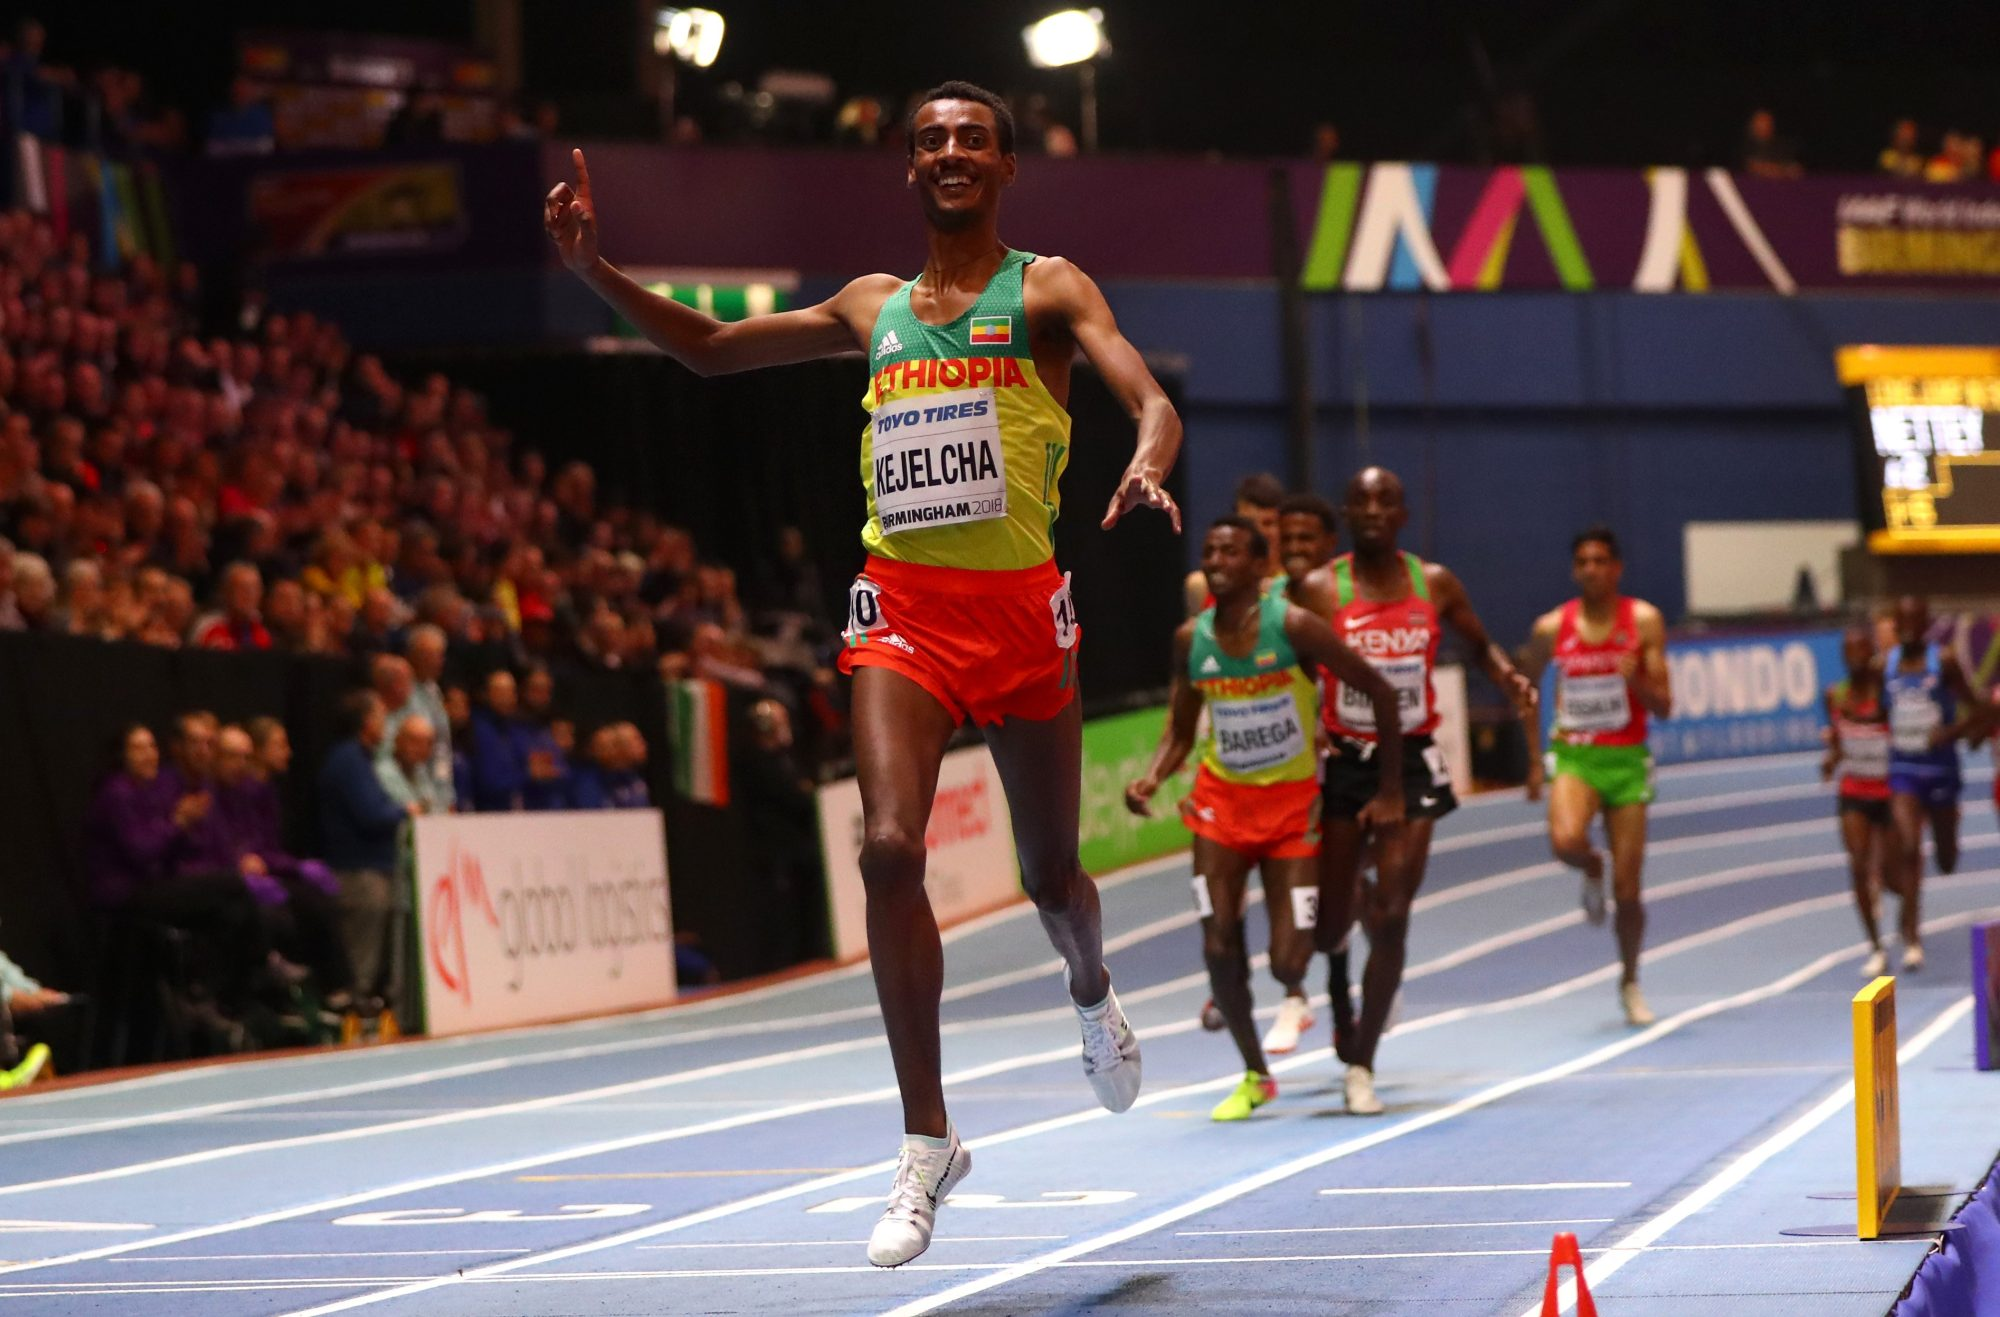 Gold Medallist, Yomif Kejelcha of Ethopia celebrates winning the Mens 3000 Metres Final during the IAAF World Indoor Championships on Day Four at Arena Birmingham on March 4, 2018 in Birmingham, England. (Photo by Michael Steele/Getty Images for IAAF)